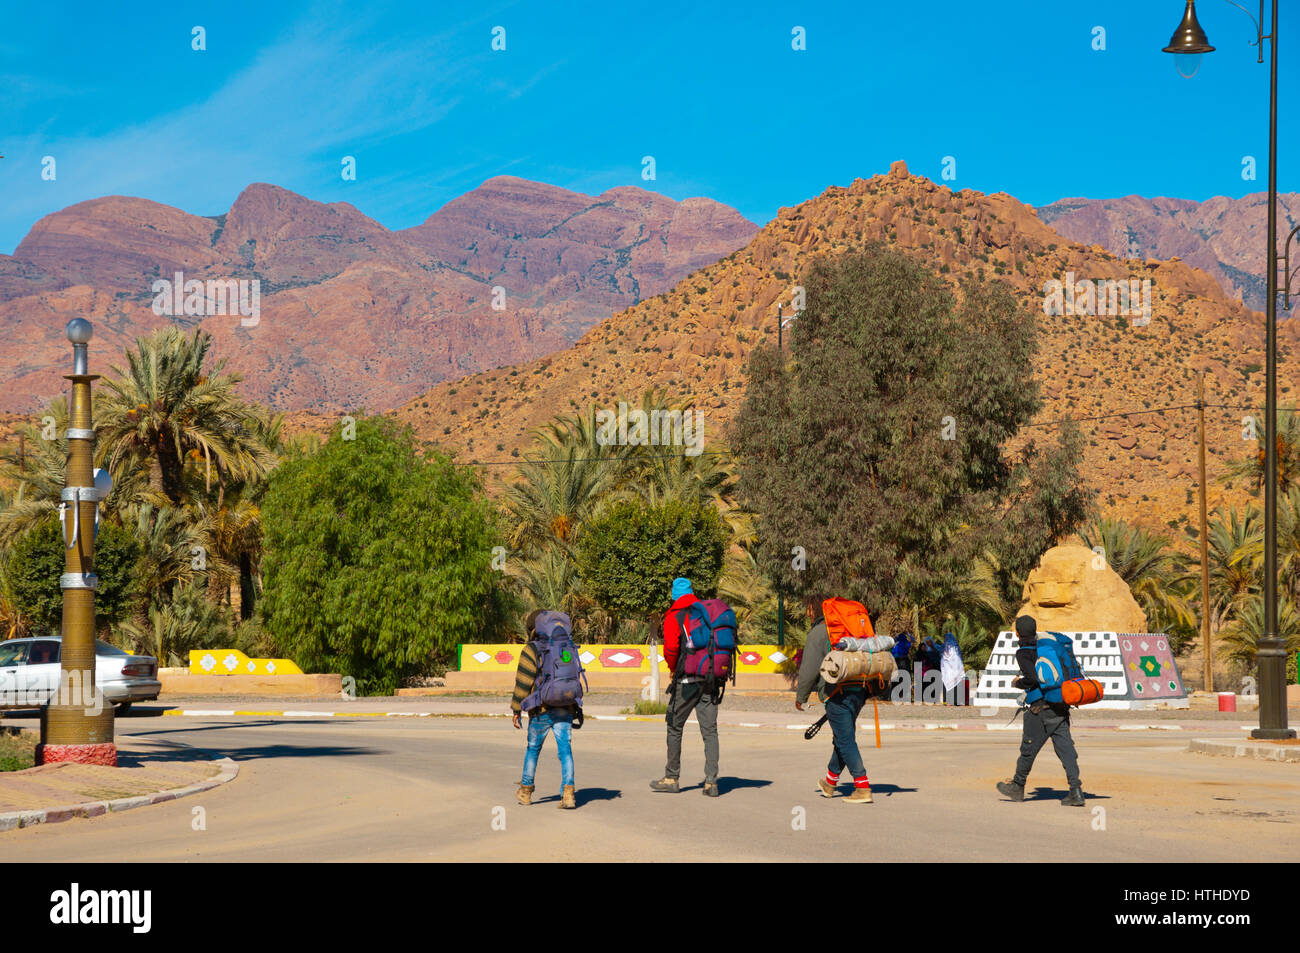 Hikers, with backpacks, Tafraout, Souss Massa region, Morocco - Stock Image